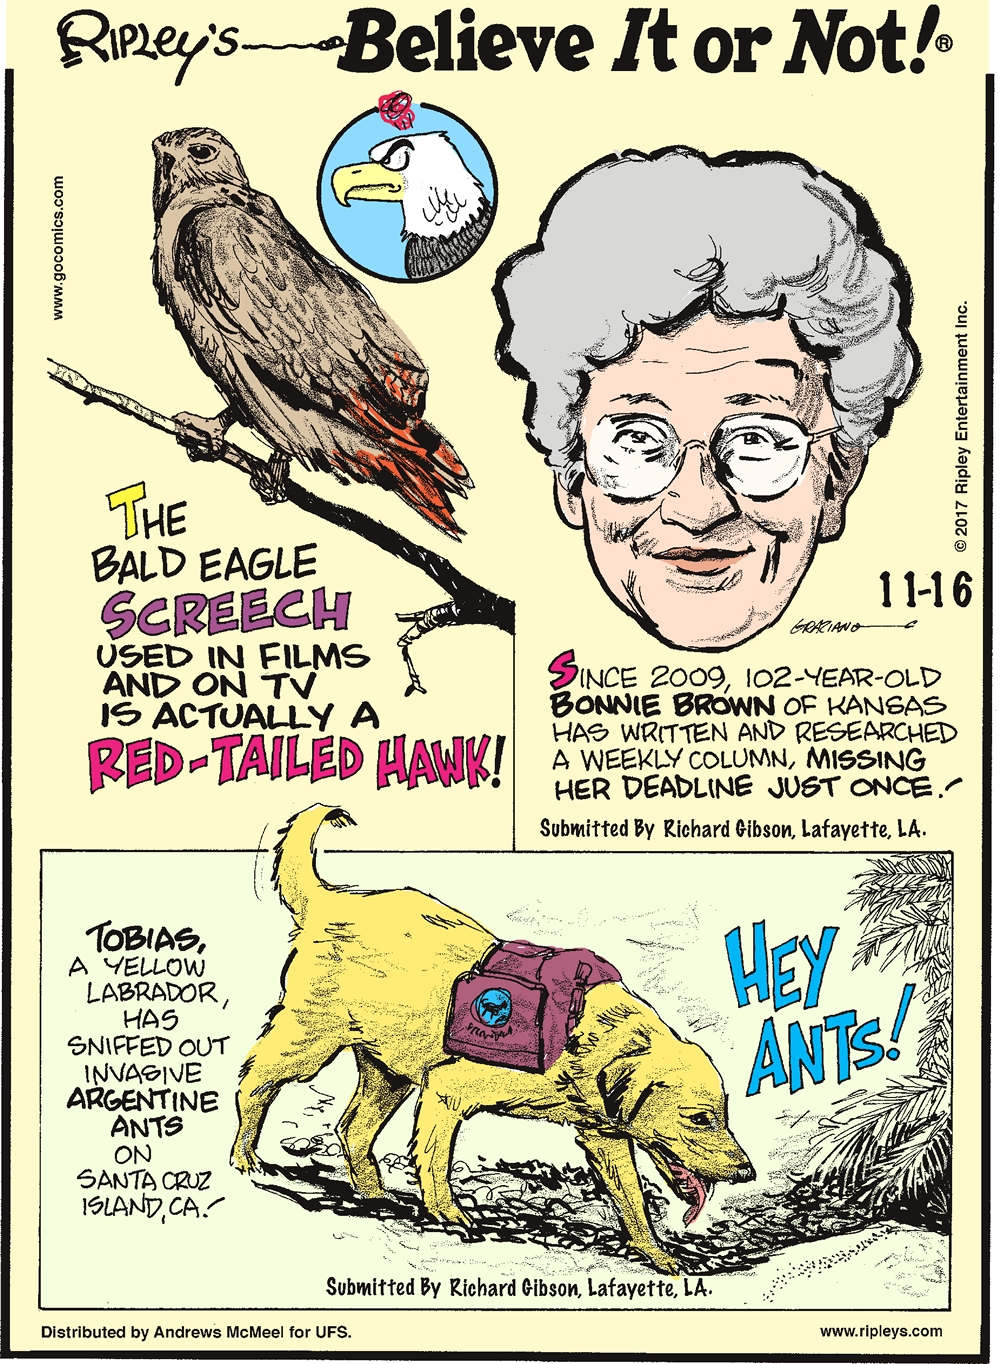 The bald eagle screech used in films and on TV is actually a red-tailed hawk!-------------------- Since 2009, 102-year-old Bonnie Brown of Kansas has written and researched a weekly column, missing her deadline just once! Submitted by Richard Gibson, Lafayette, LA.-------------------- Tobias, a yellow labrador, has sniffed out invasive Argentine ants on Santa Cruz Island, CA! Submitted by Richard Gibson, Lafayette, LA.